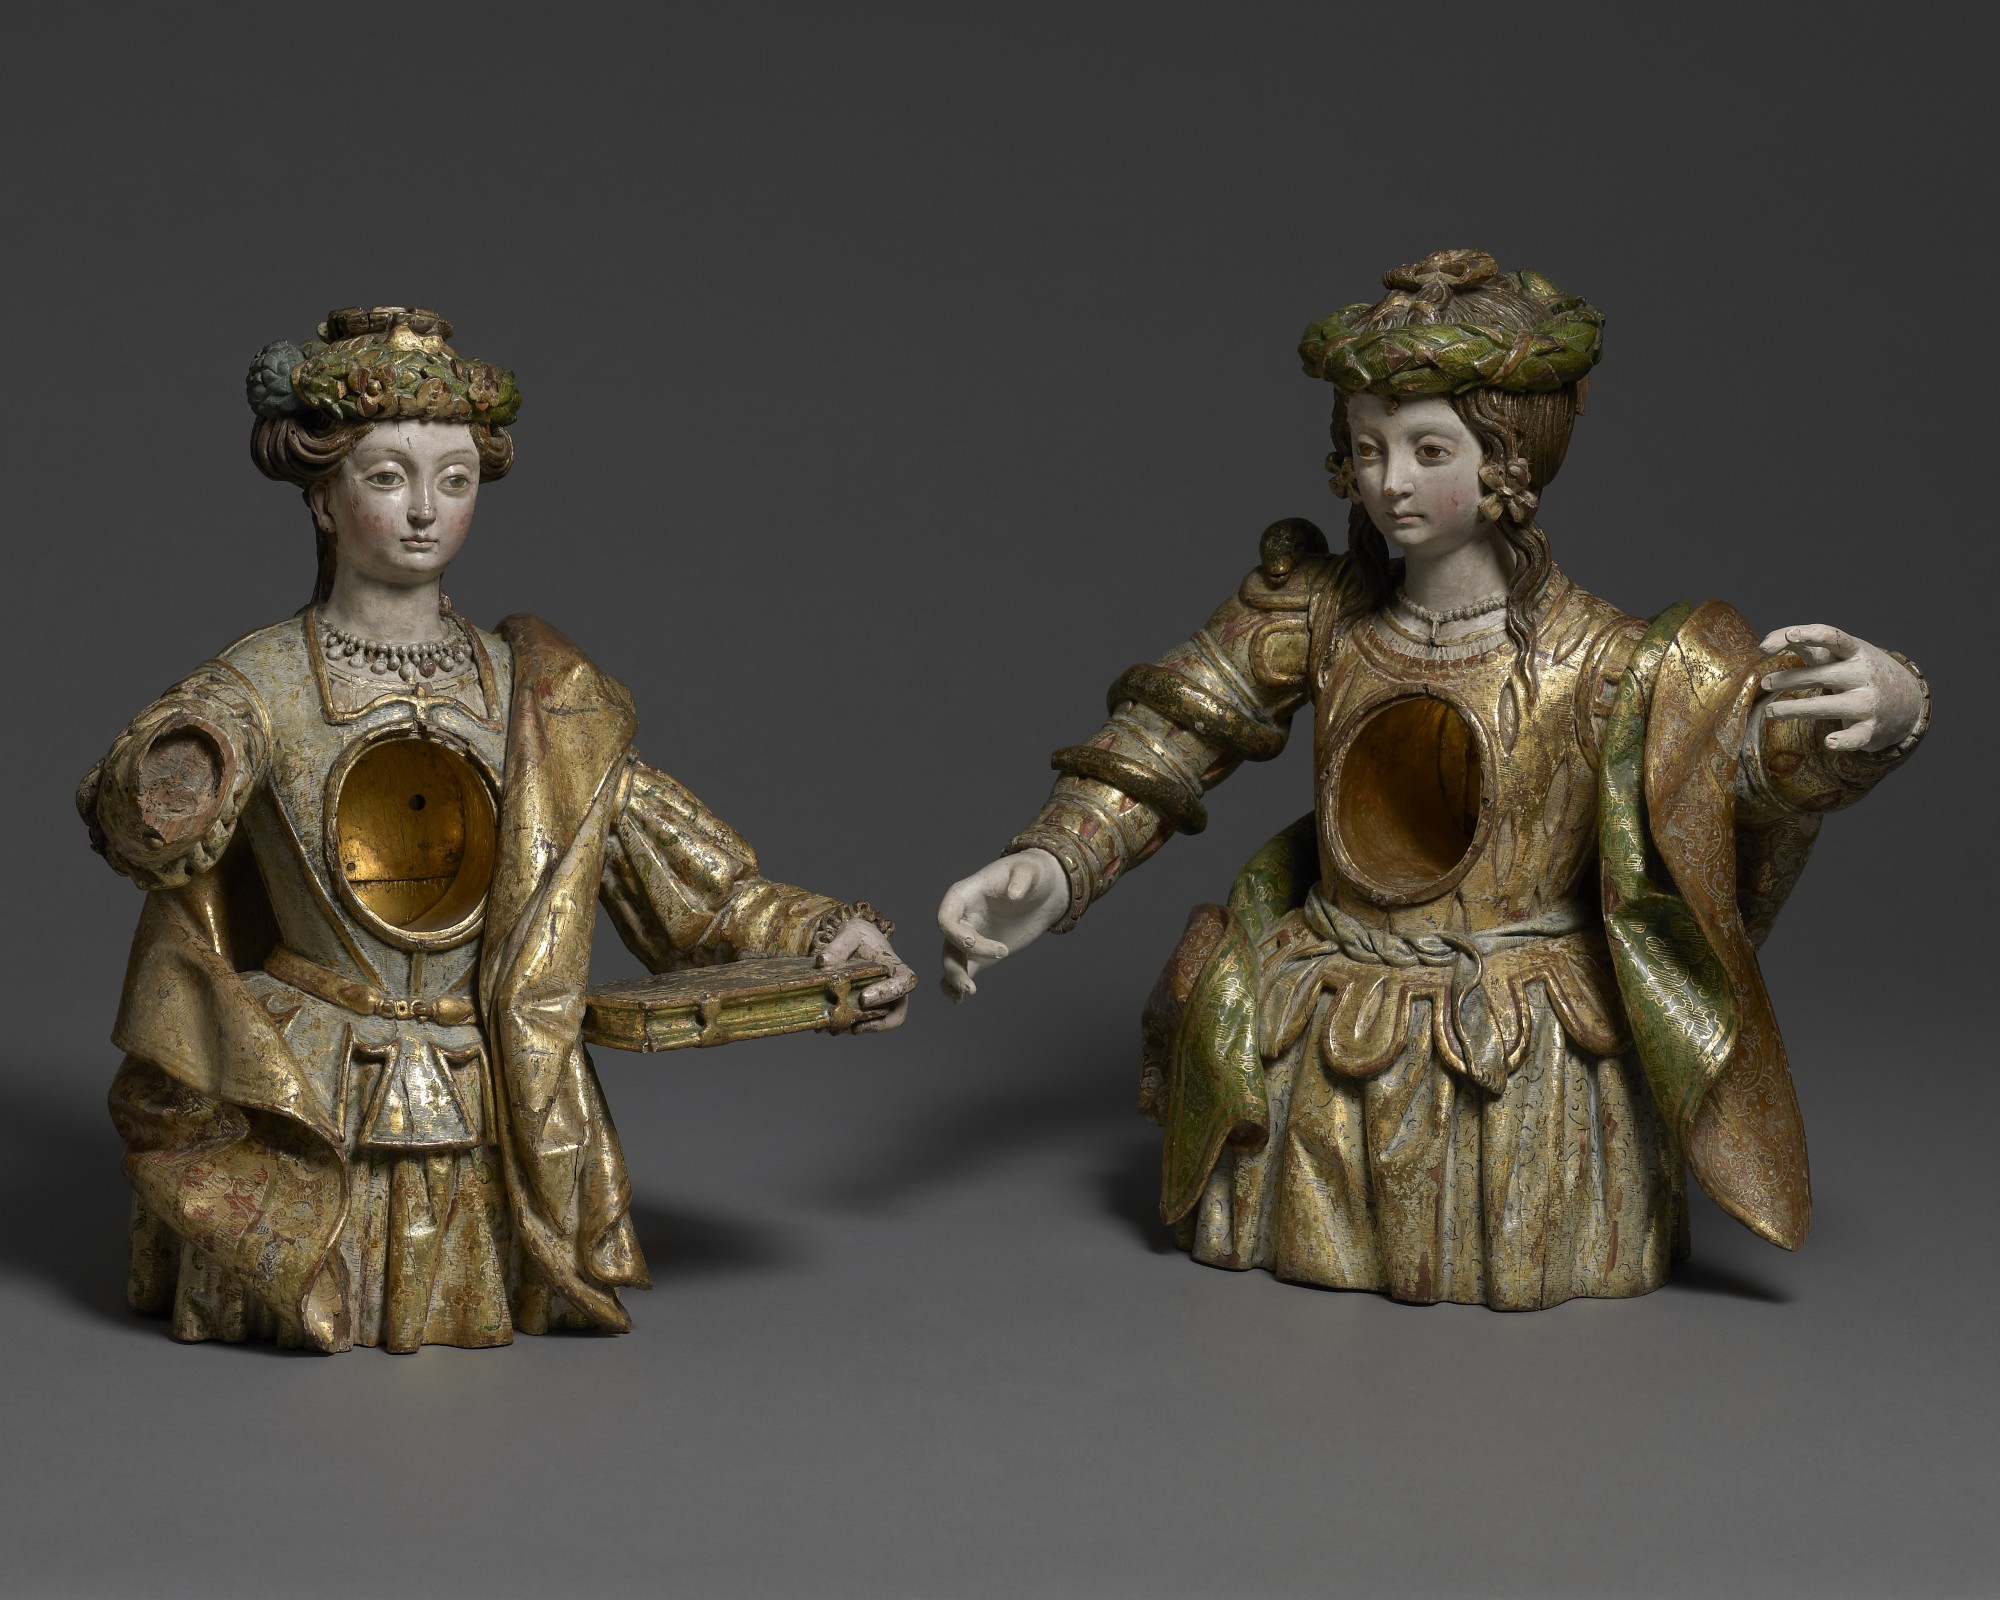 A Pair of ReliquariesSaints Thecla and Susanna, Spain, first half 16th century